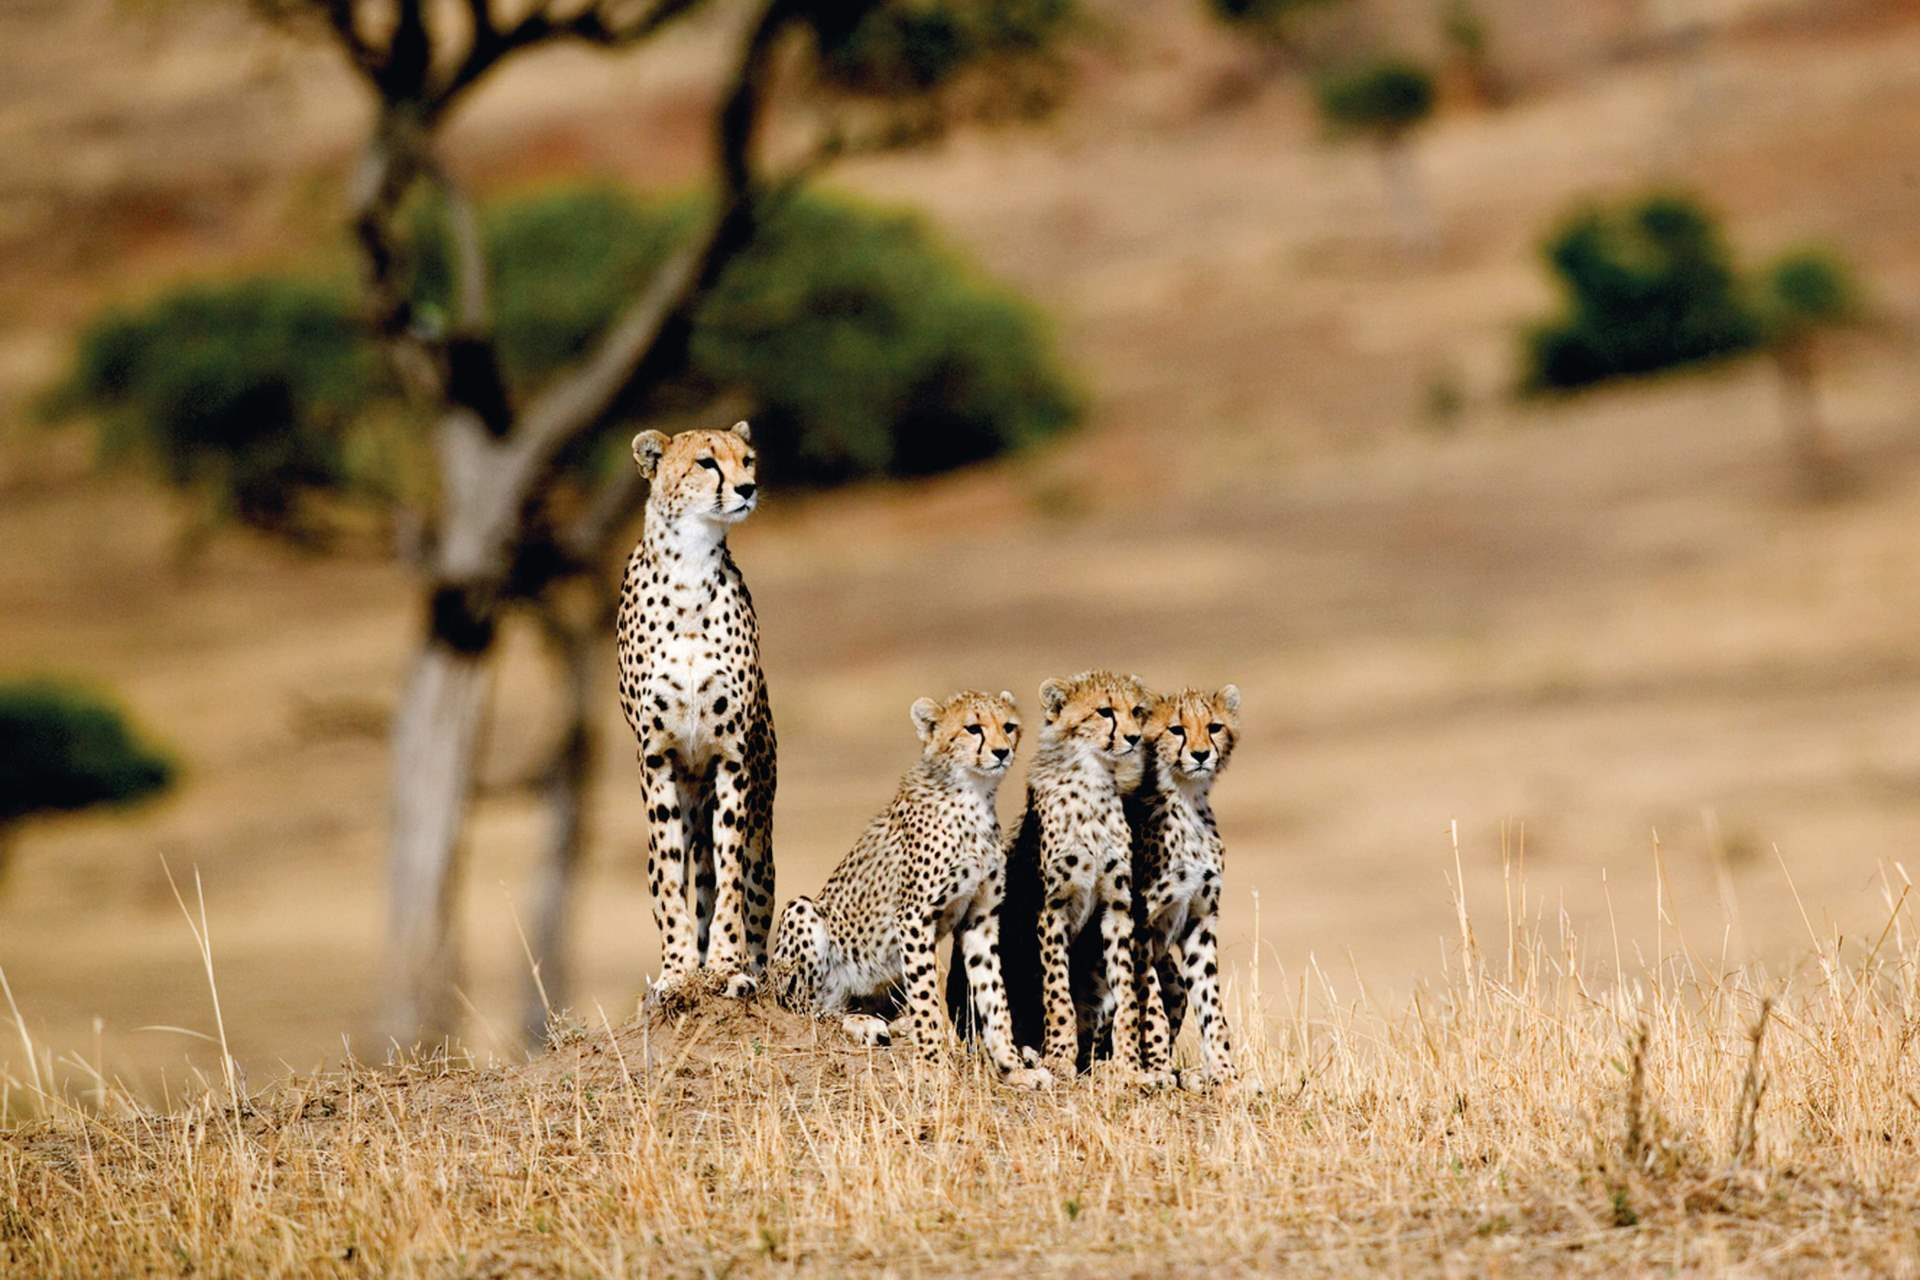 cheetah family of cubs in Kenya © BBC The Hunt wildlife documentary, Masai Mara, Kenya